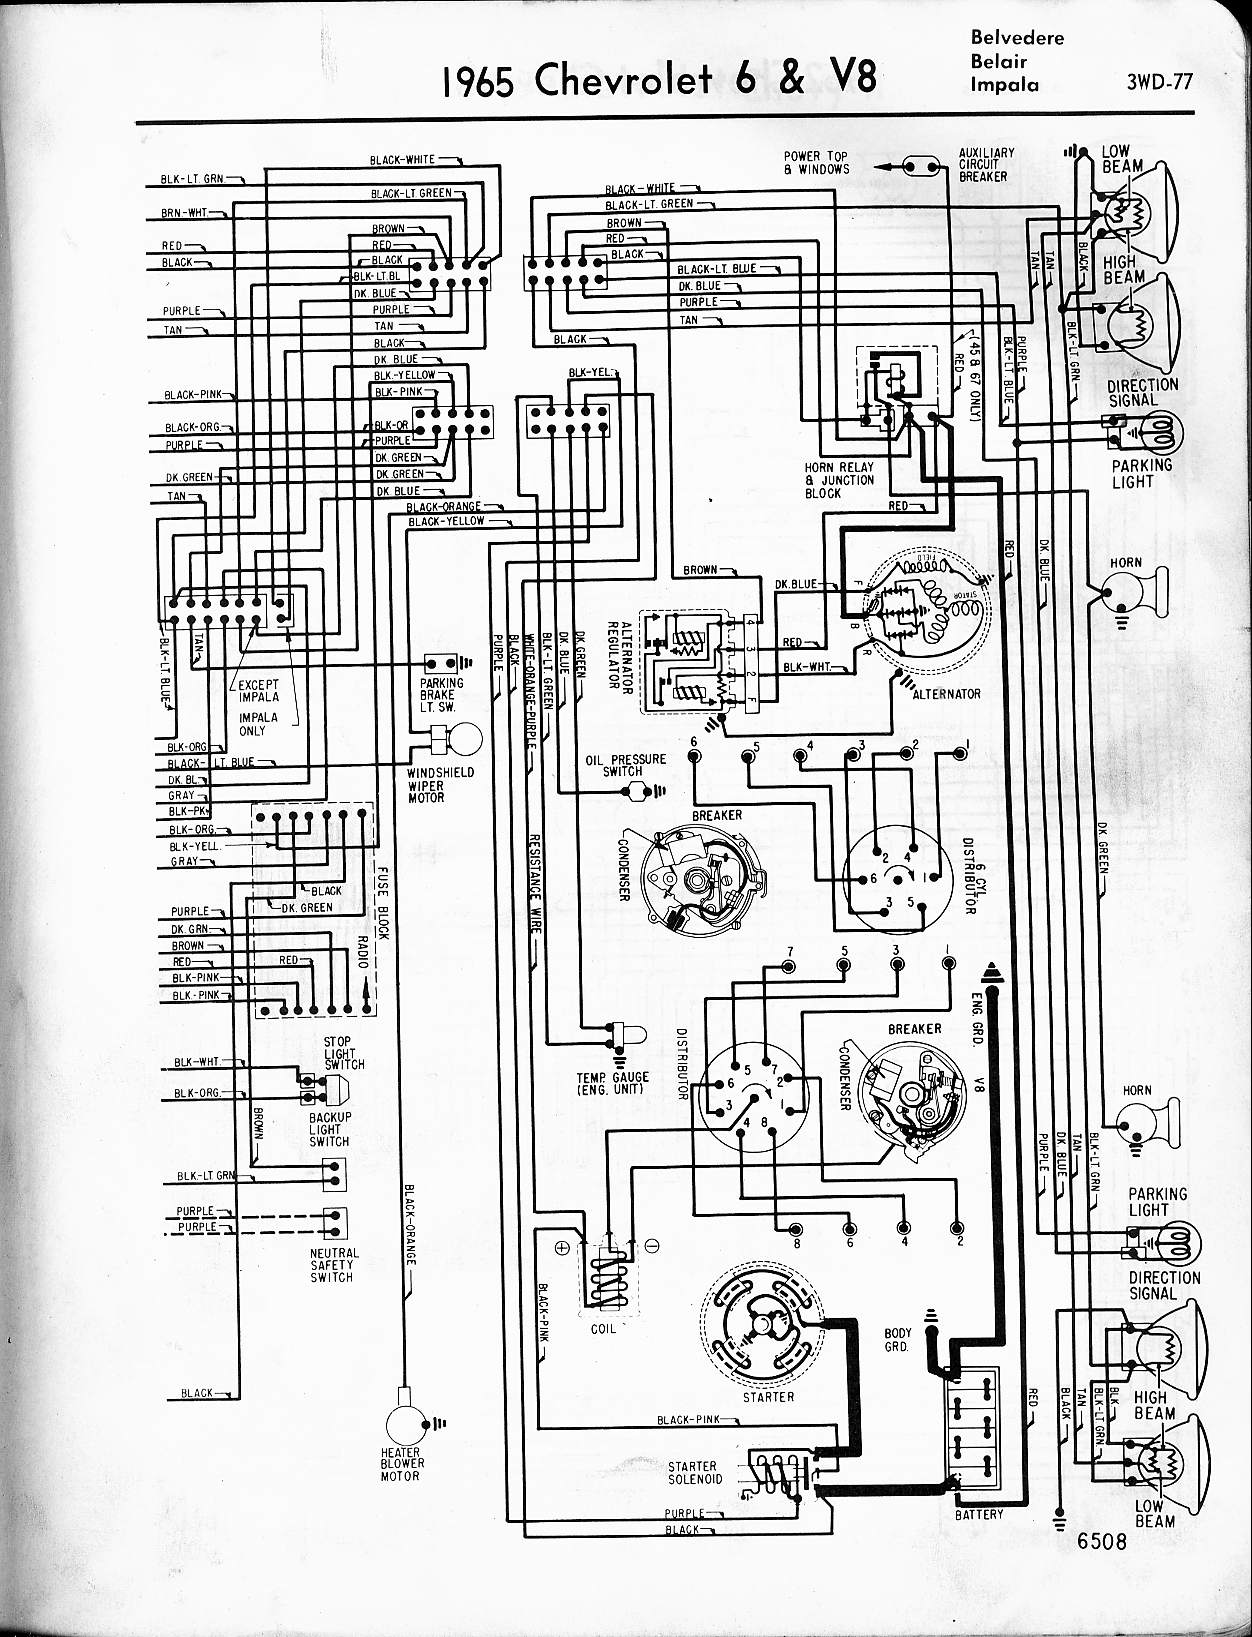 MWireChev65_3WD 077 57 65 chevy wiring diagrams 2003 impala ignition switch wiring diagram at metegol.co